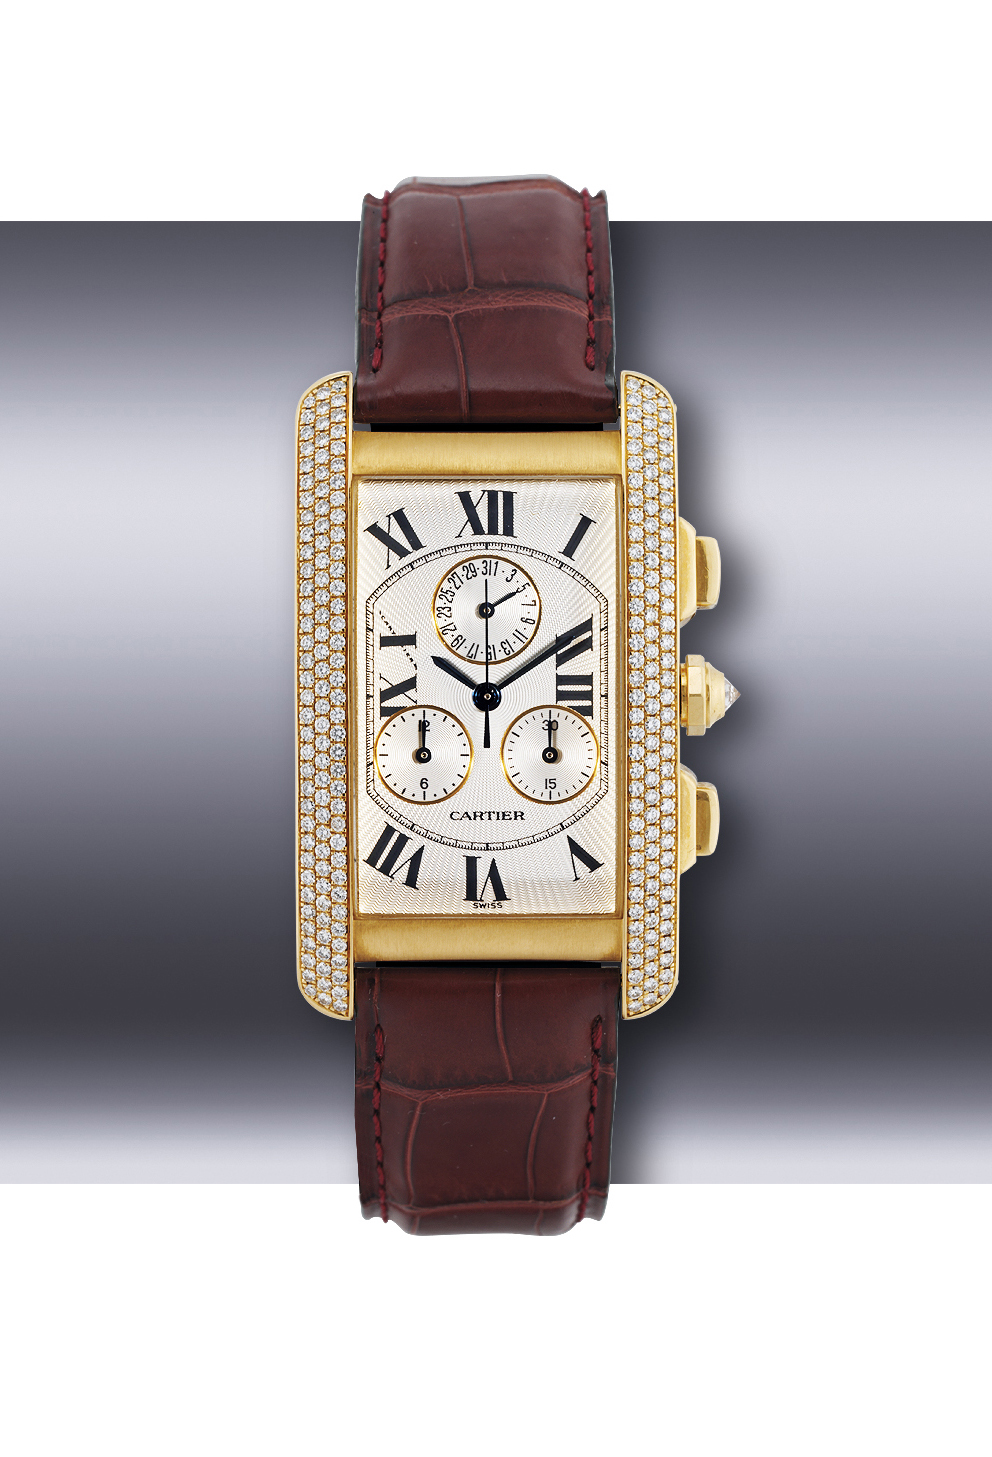 CARTIER, TANK AMERICAINE  YELLOW GOLD AND DIAMOND-SET QUARTZ CHRONOGRAPH WRISTWATCH WITH DATE DISPLAY